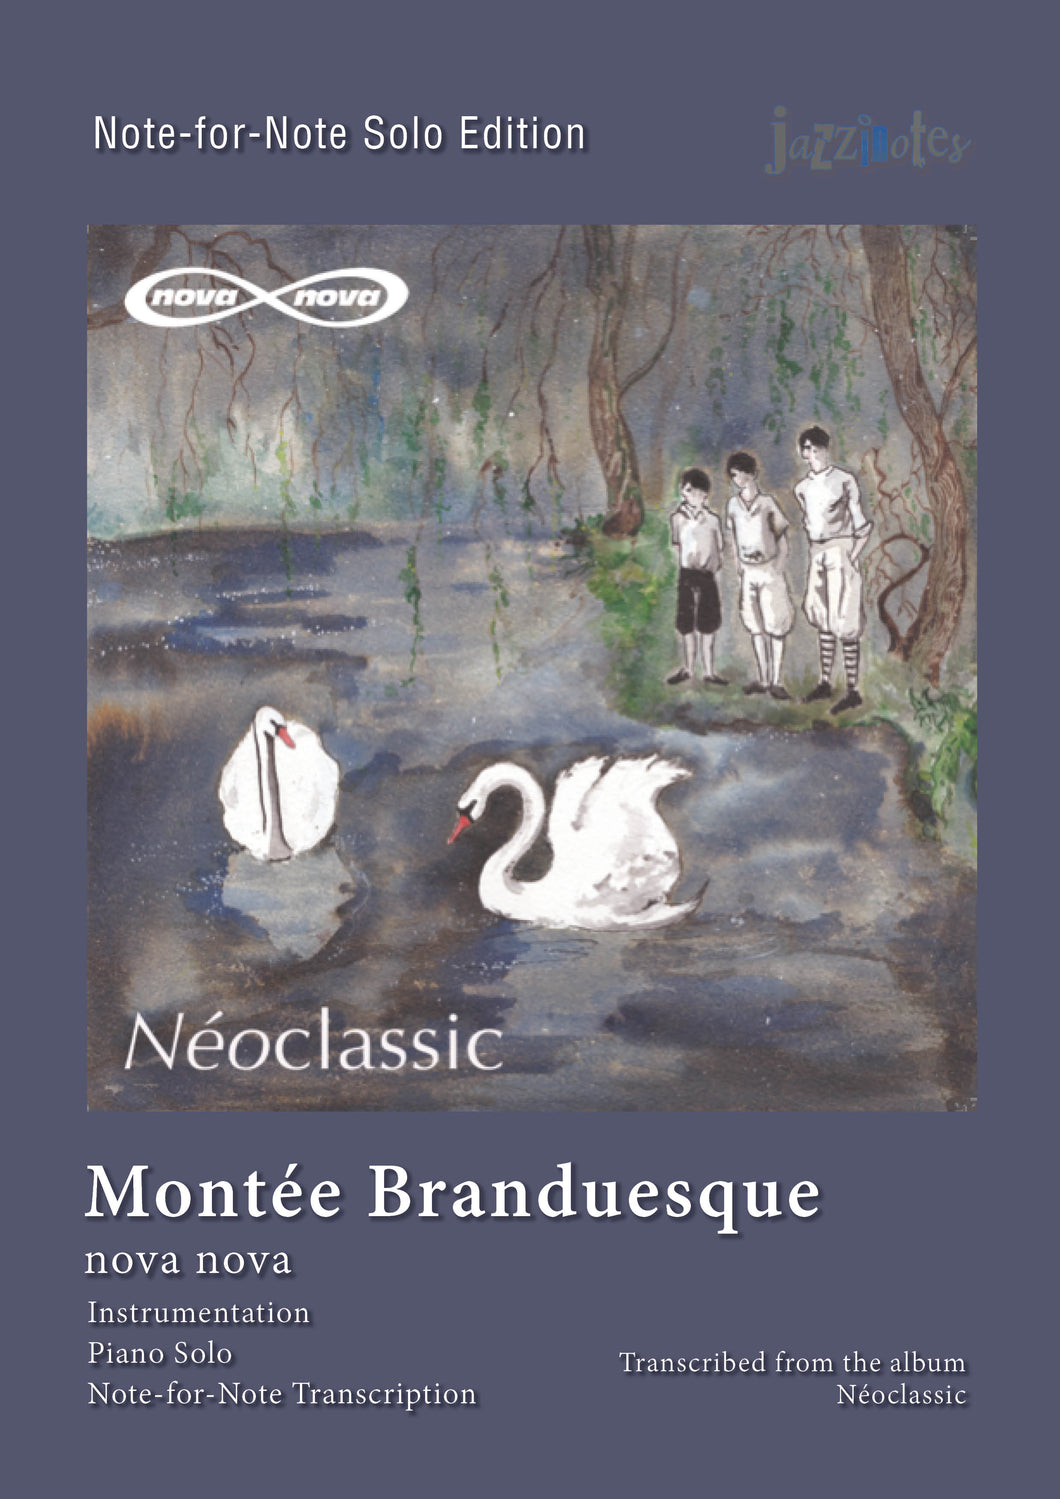 Nova Nova: Montée Branduesque - Musiknoten Download